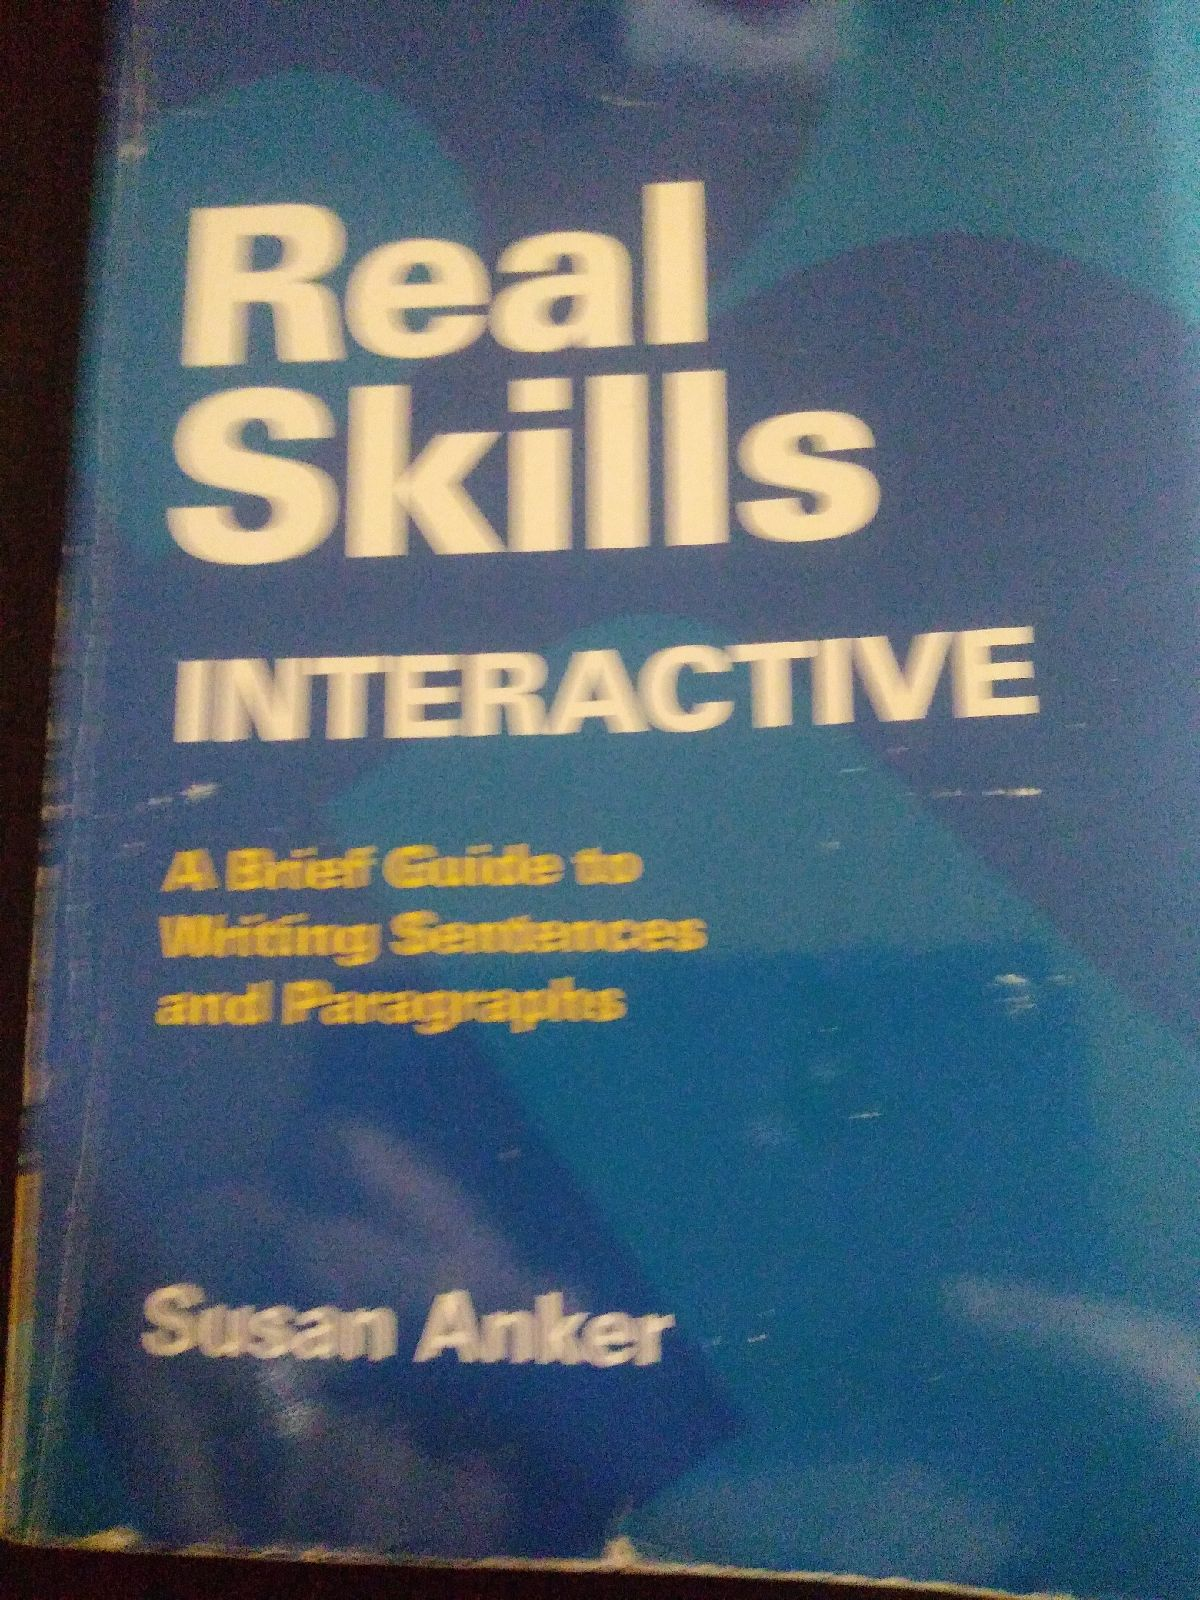 real skills book interactive by Susan An